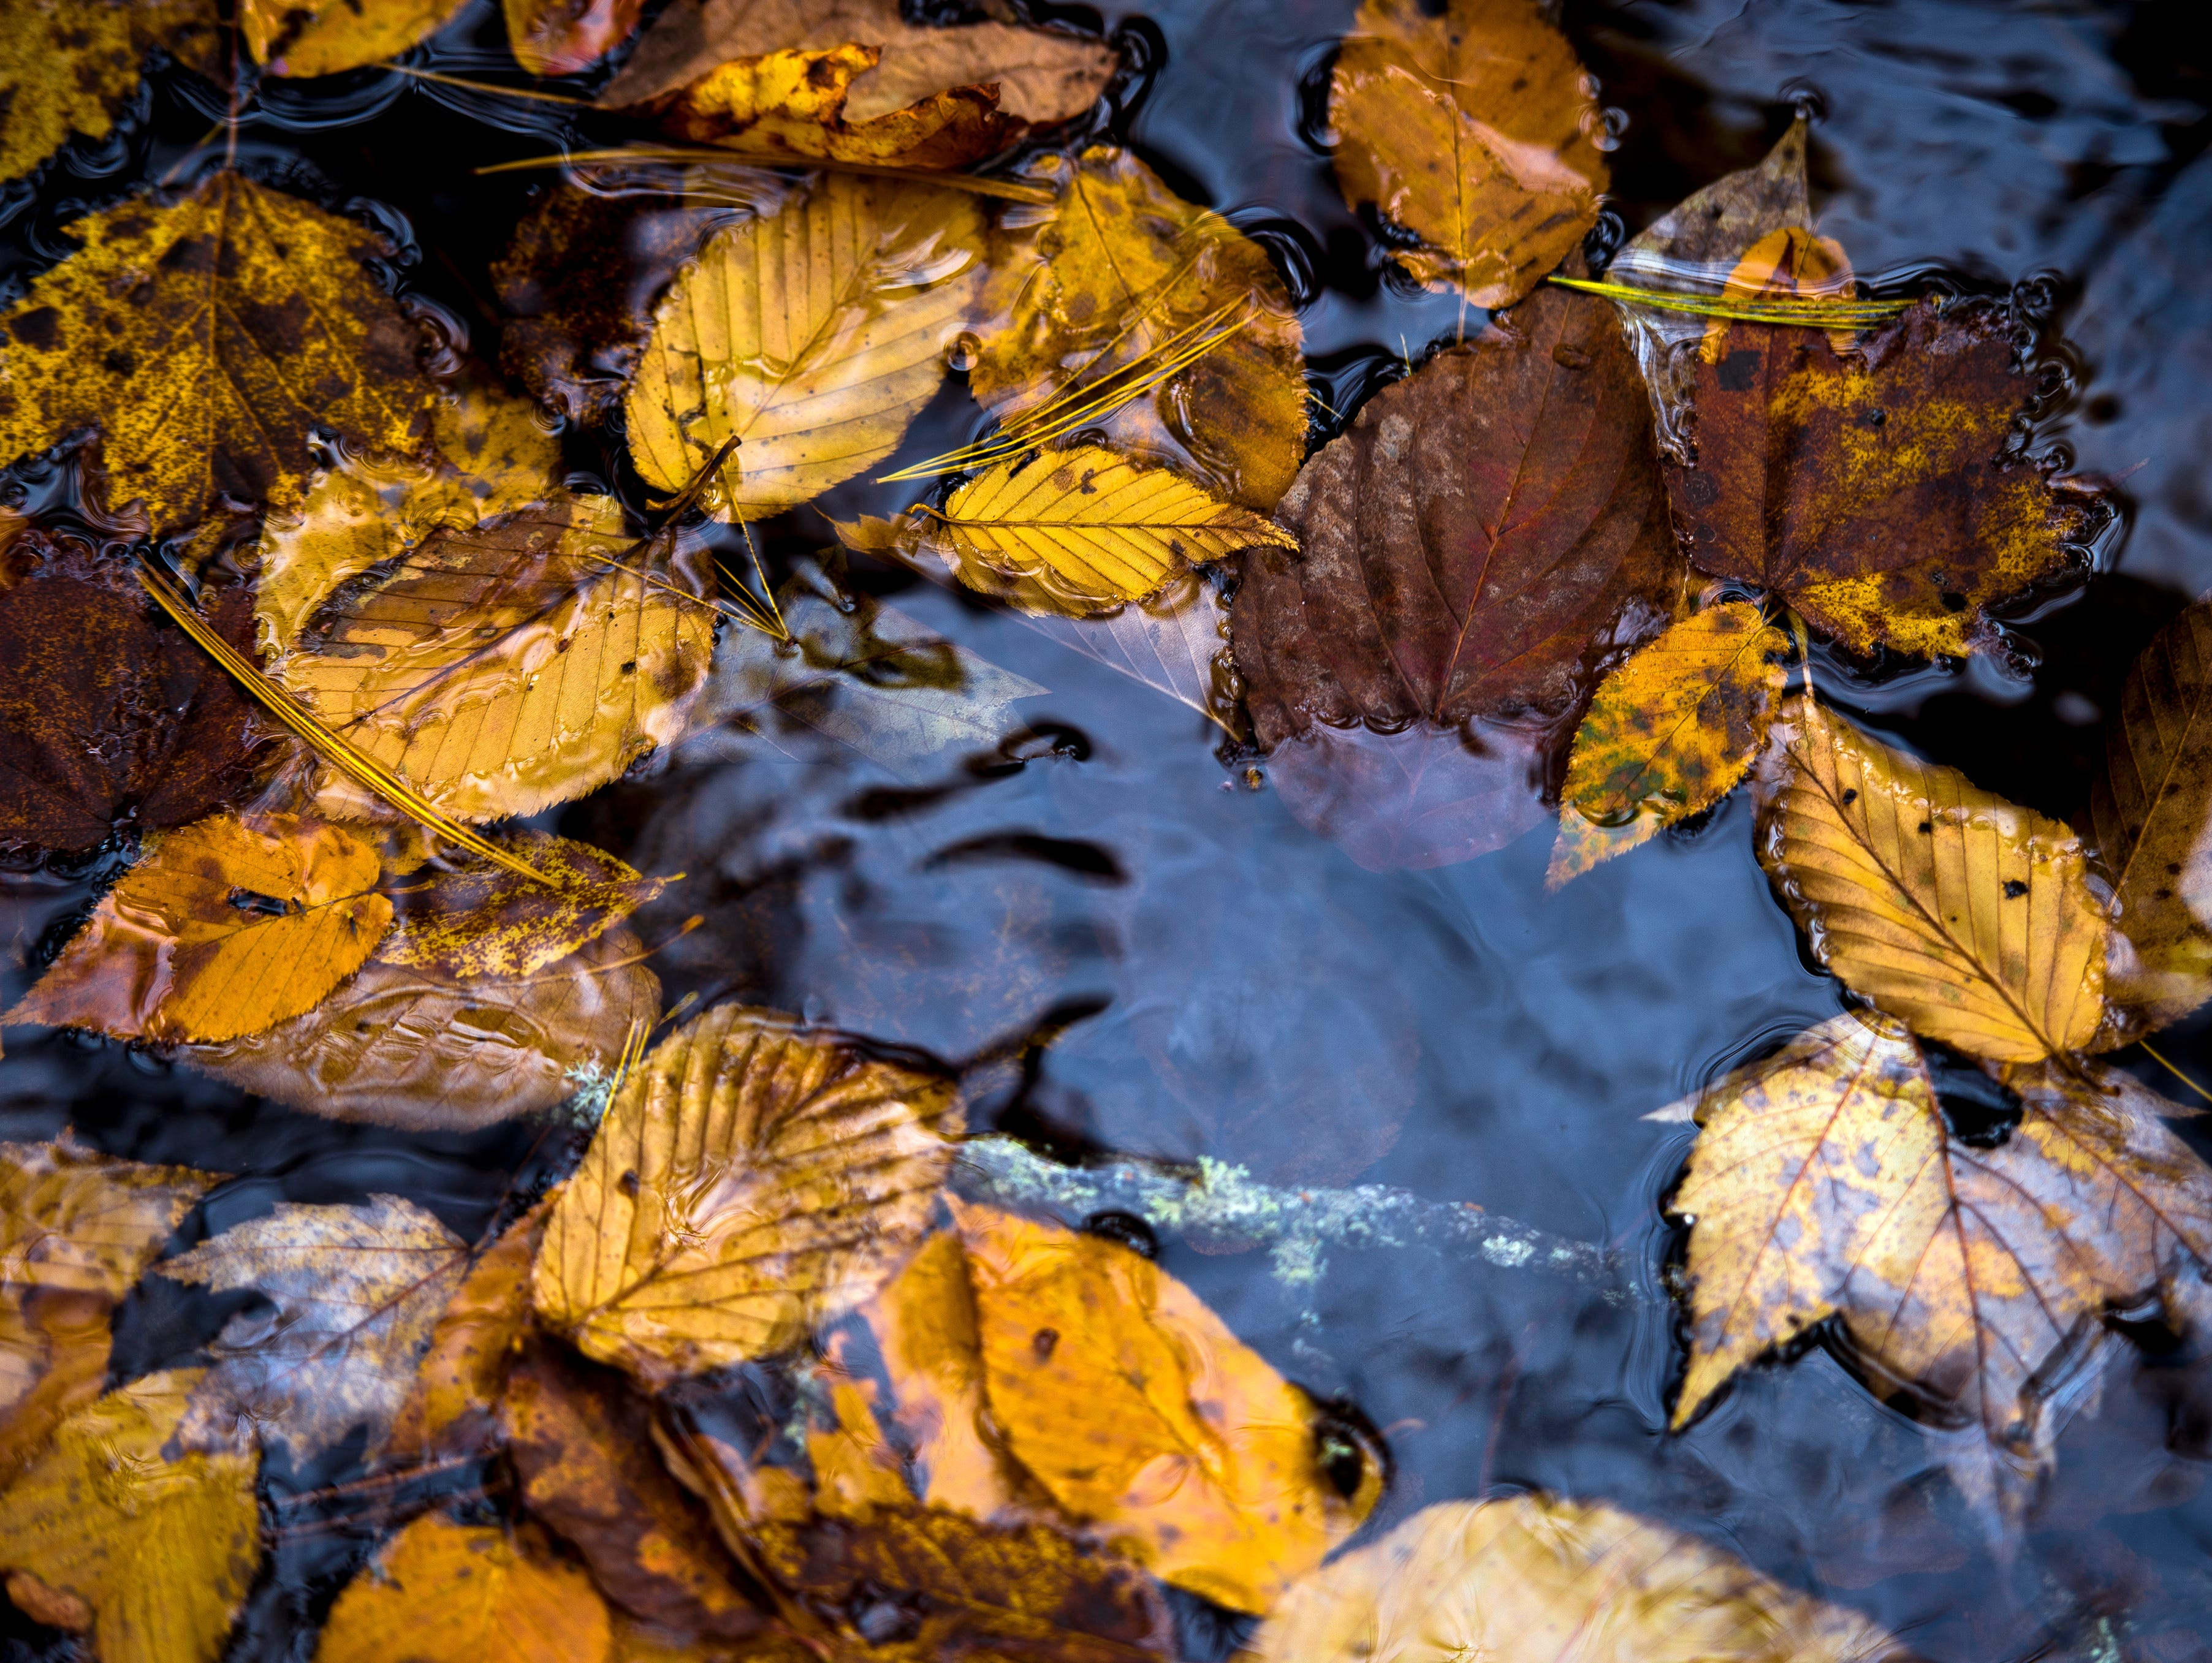 Fallen leaves float in the Little River in the Great Smoky Mountains National Park on Sunday, November 4, 2018.